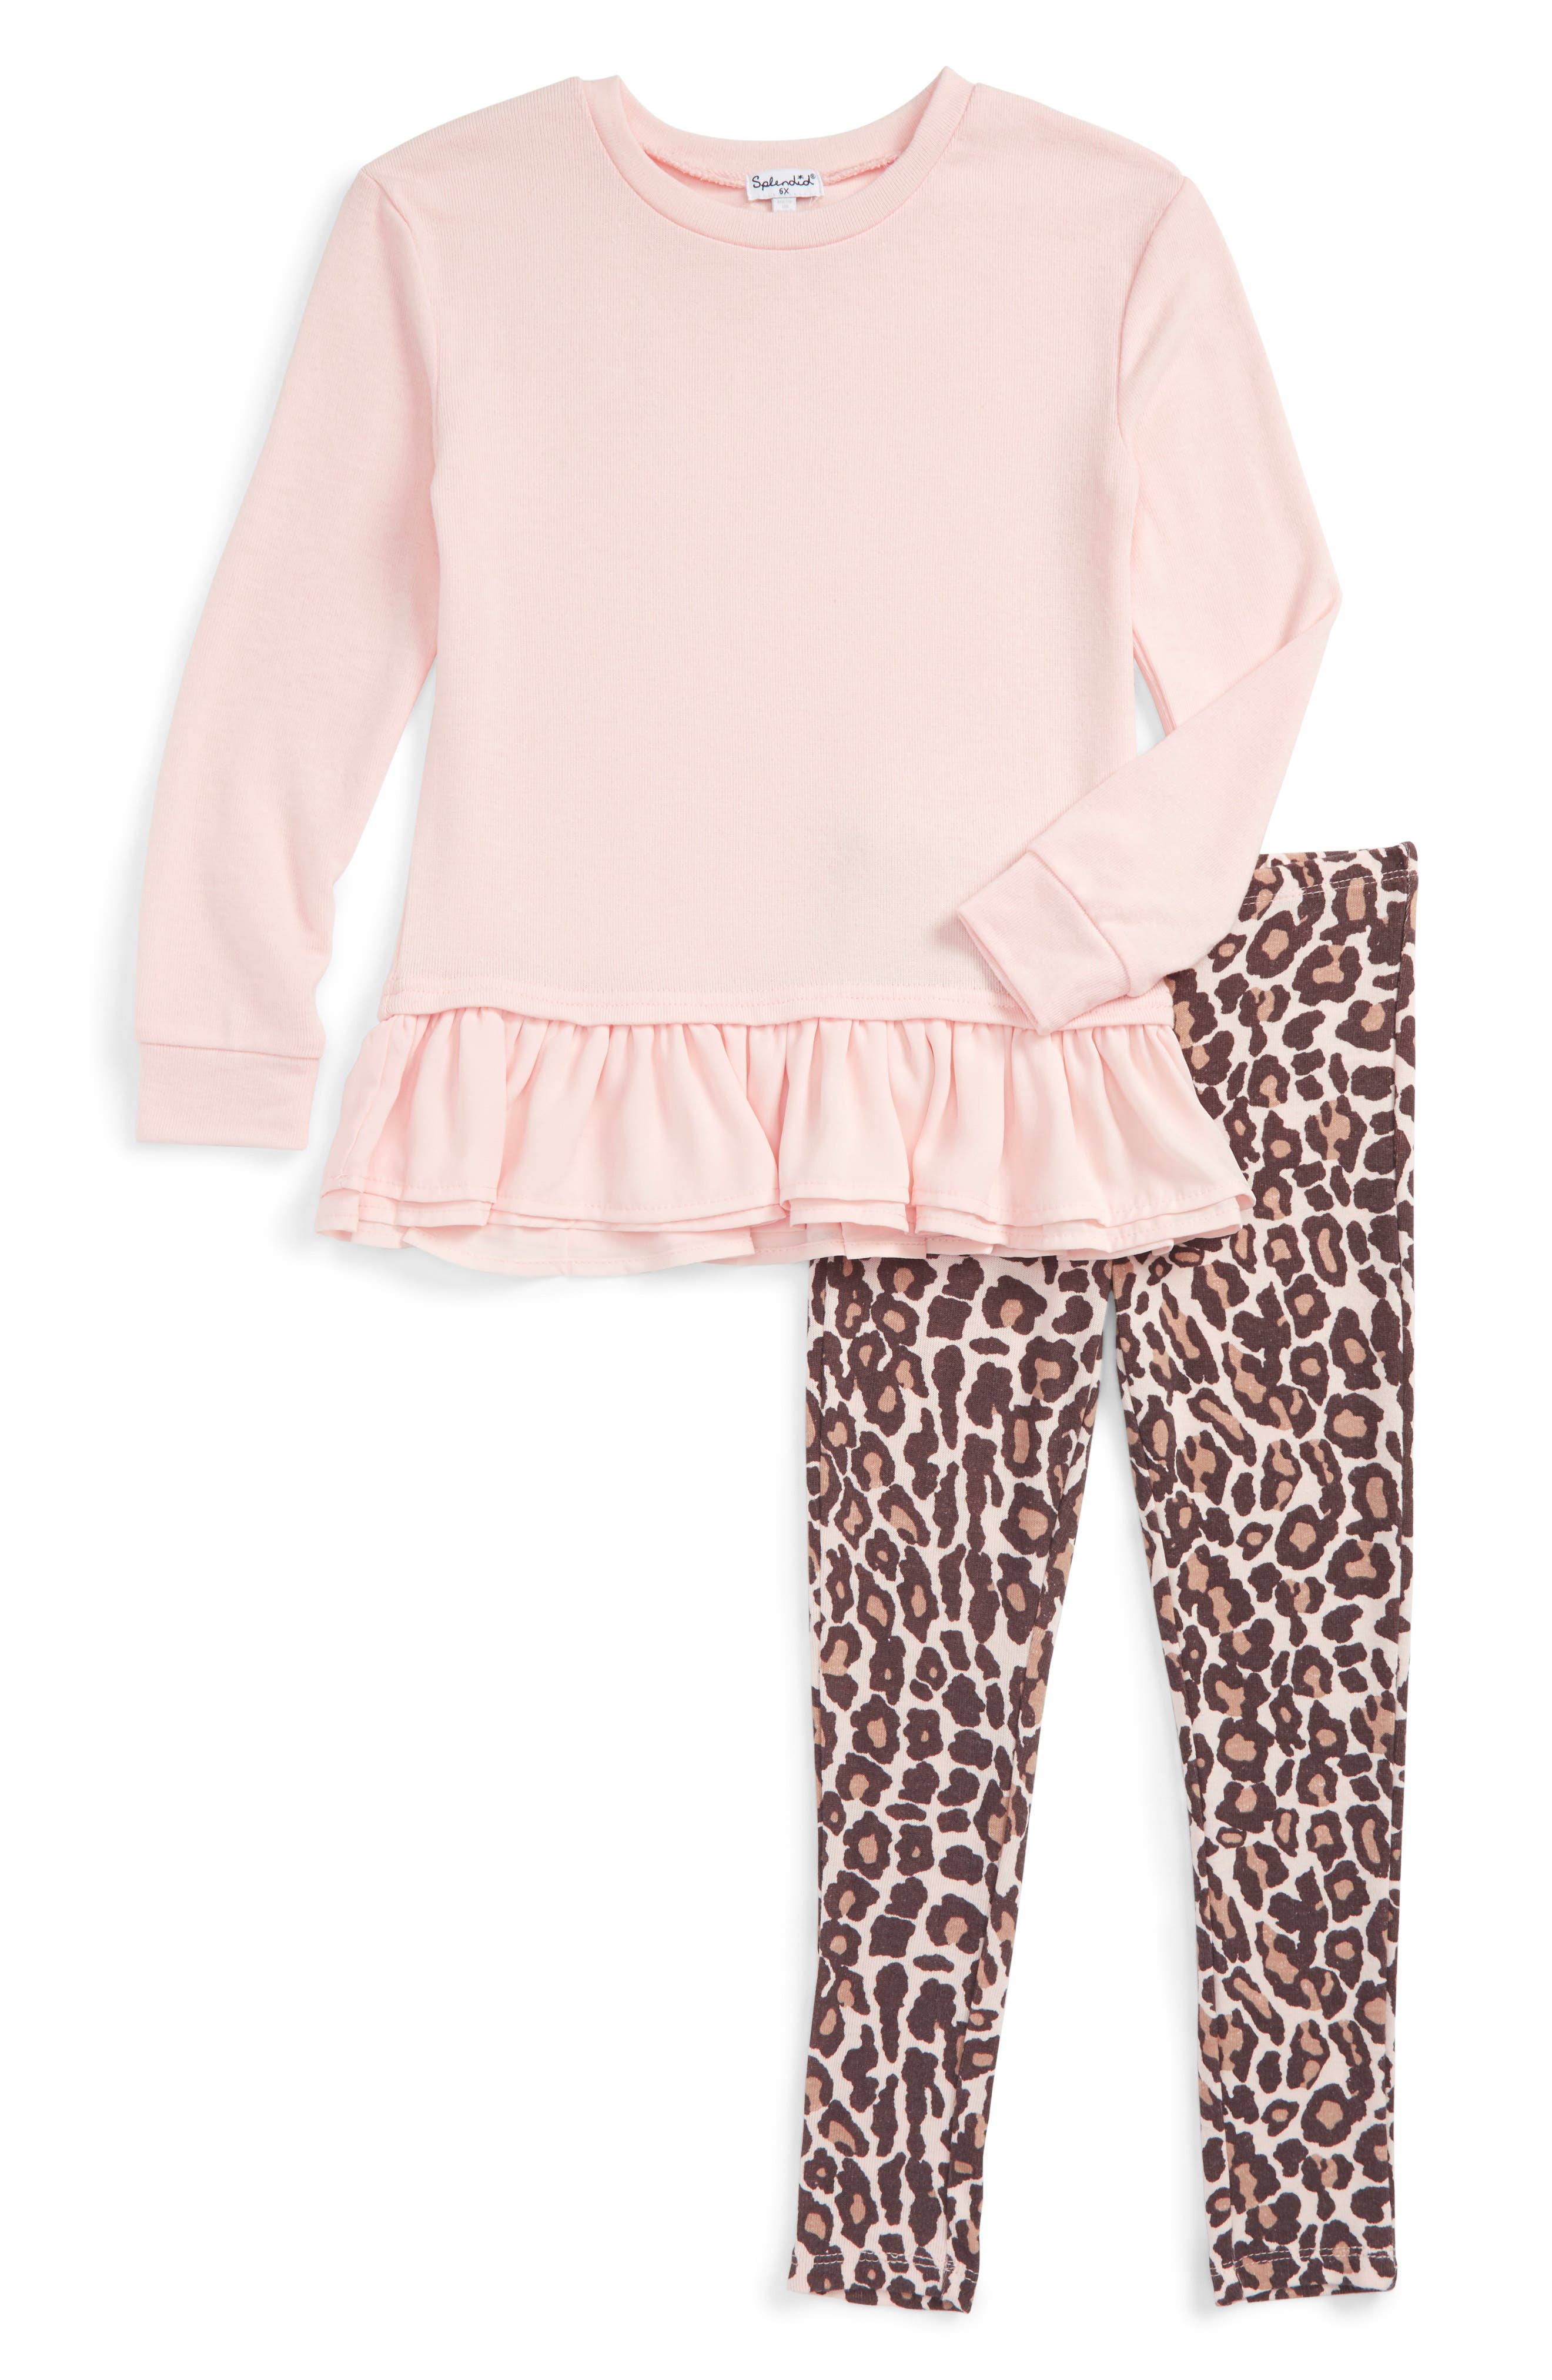 Splendid Ruffle Hem Top & Animal Print Leggings Set (Toddler Girls & Little Girls)